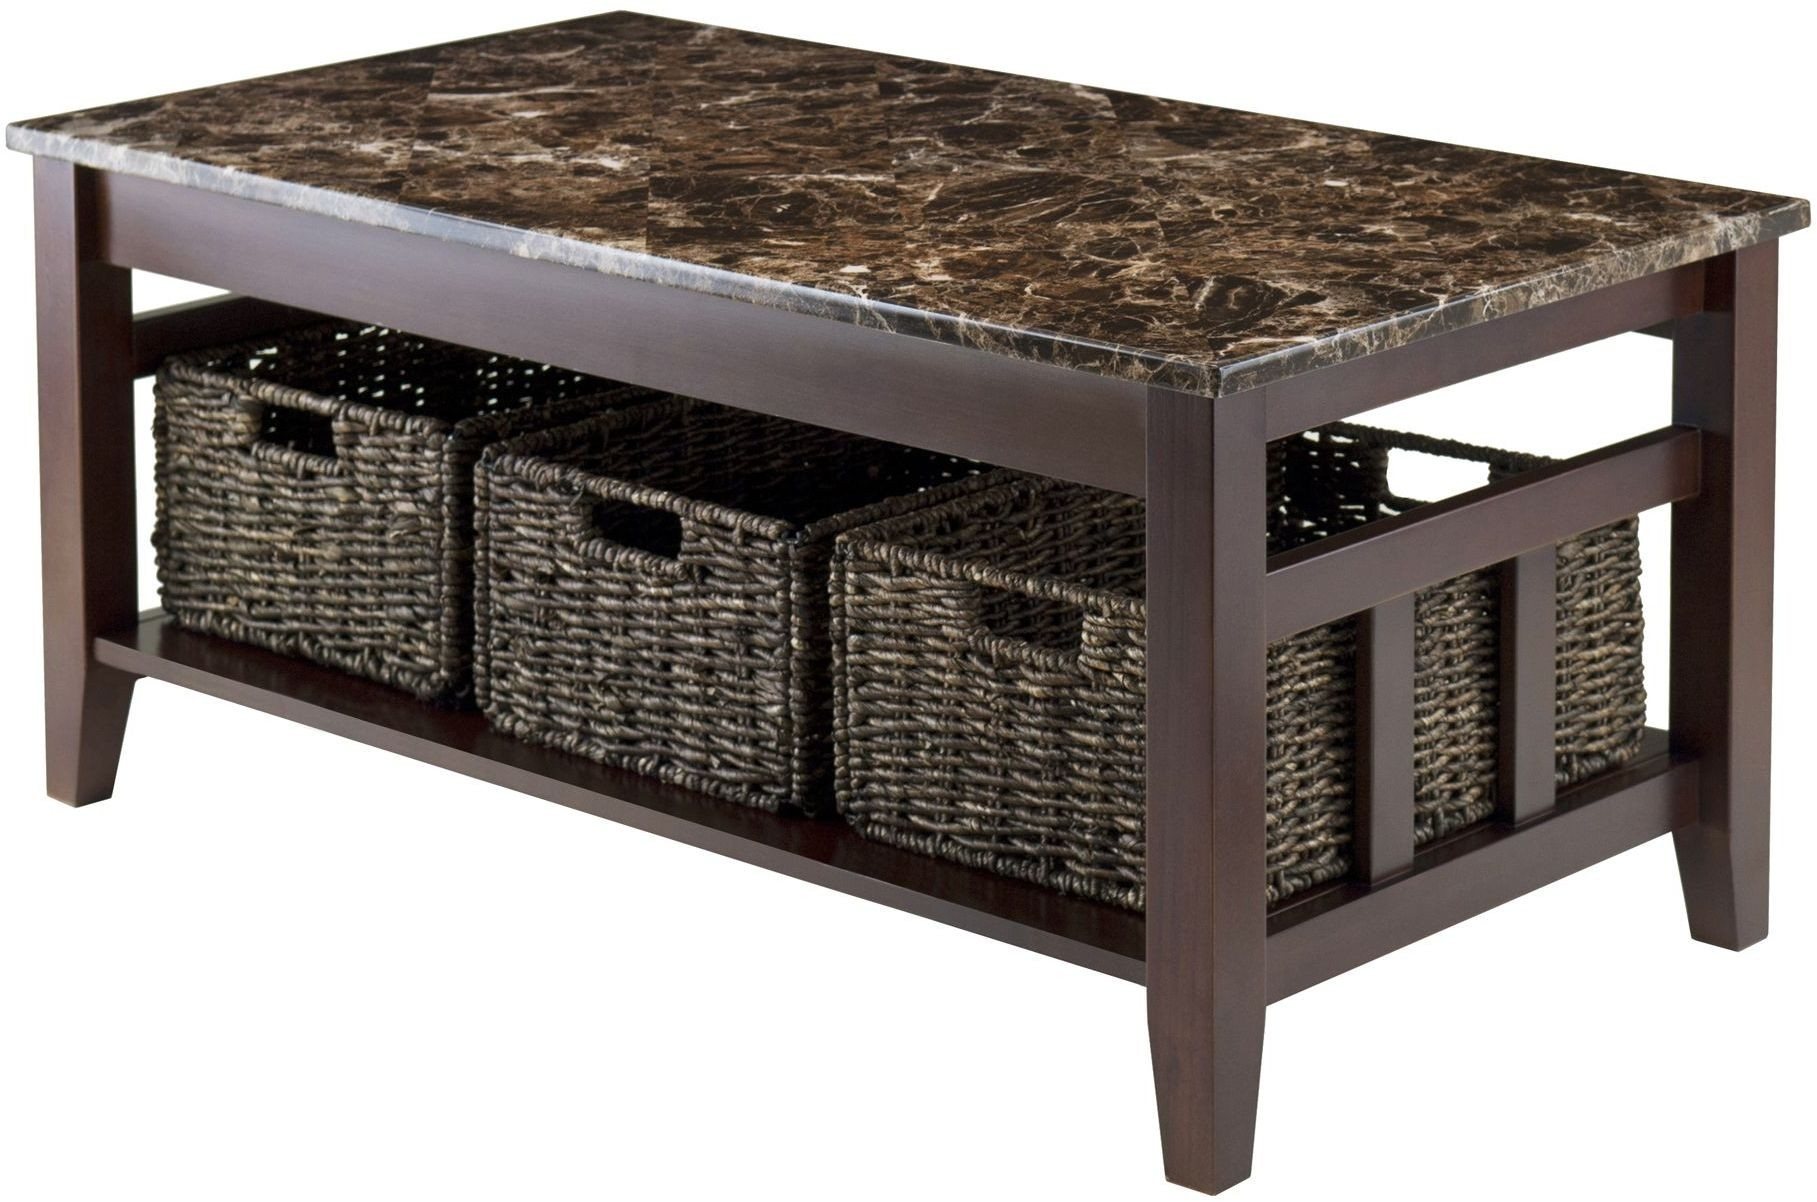 Zoey Faux Marble Top Coffee Table From Winsomewood Coleman Furniture